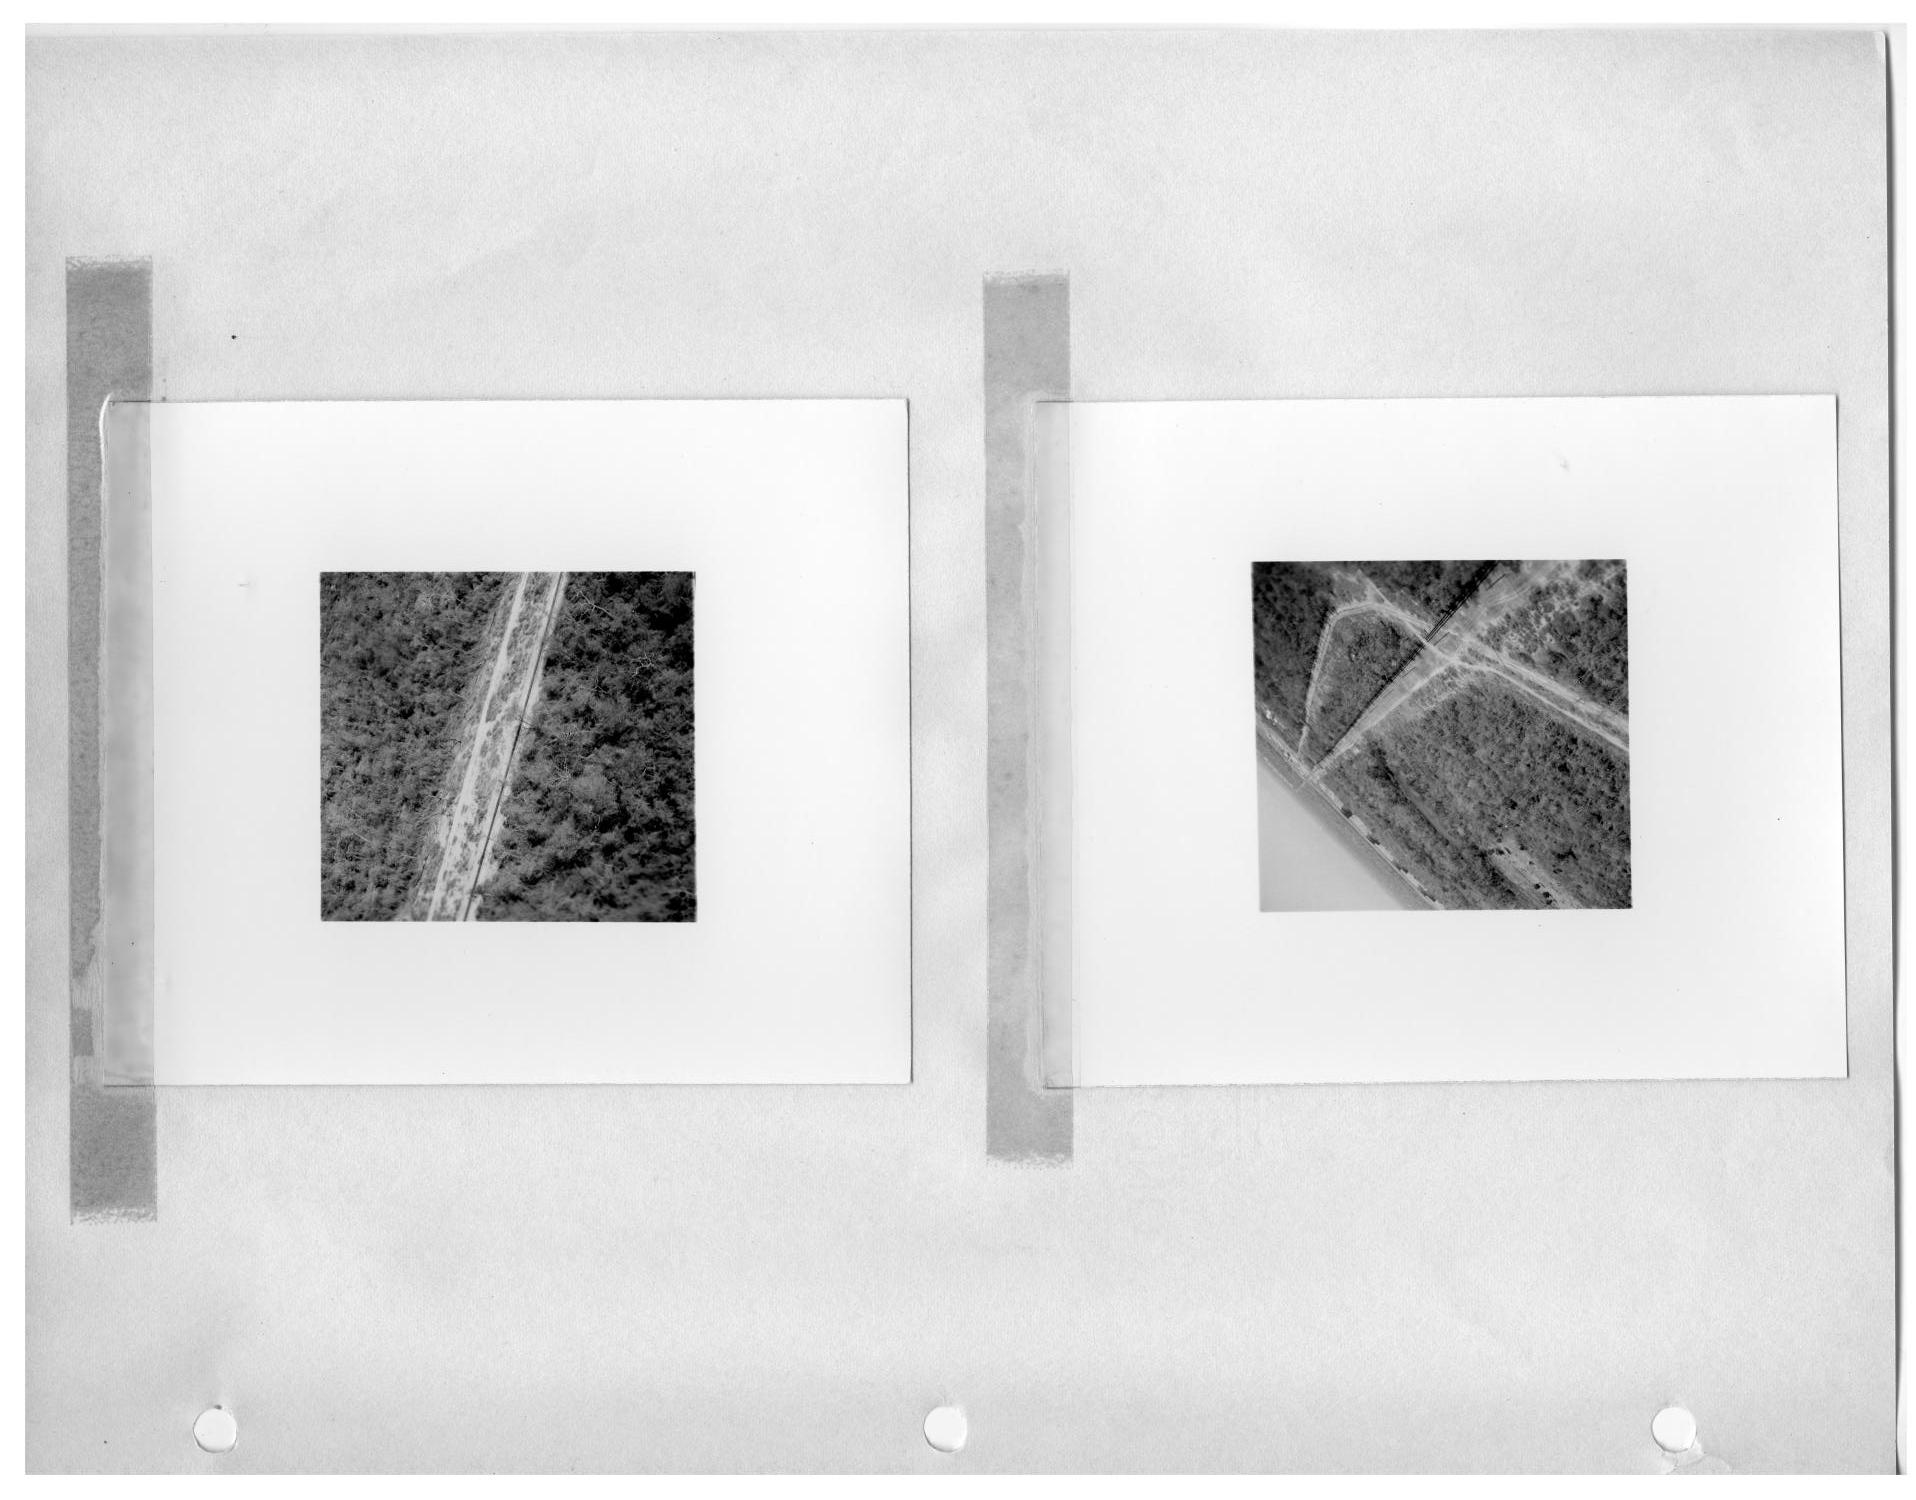 [Aerial View of Cleared RoadsThrough Forest] and [Aerial View of Intersecting Roads Through Forest]                                                                                                      [Sequence #]: 1 of 2